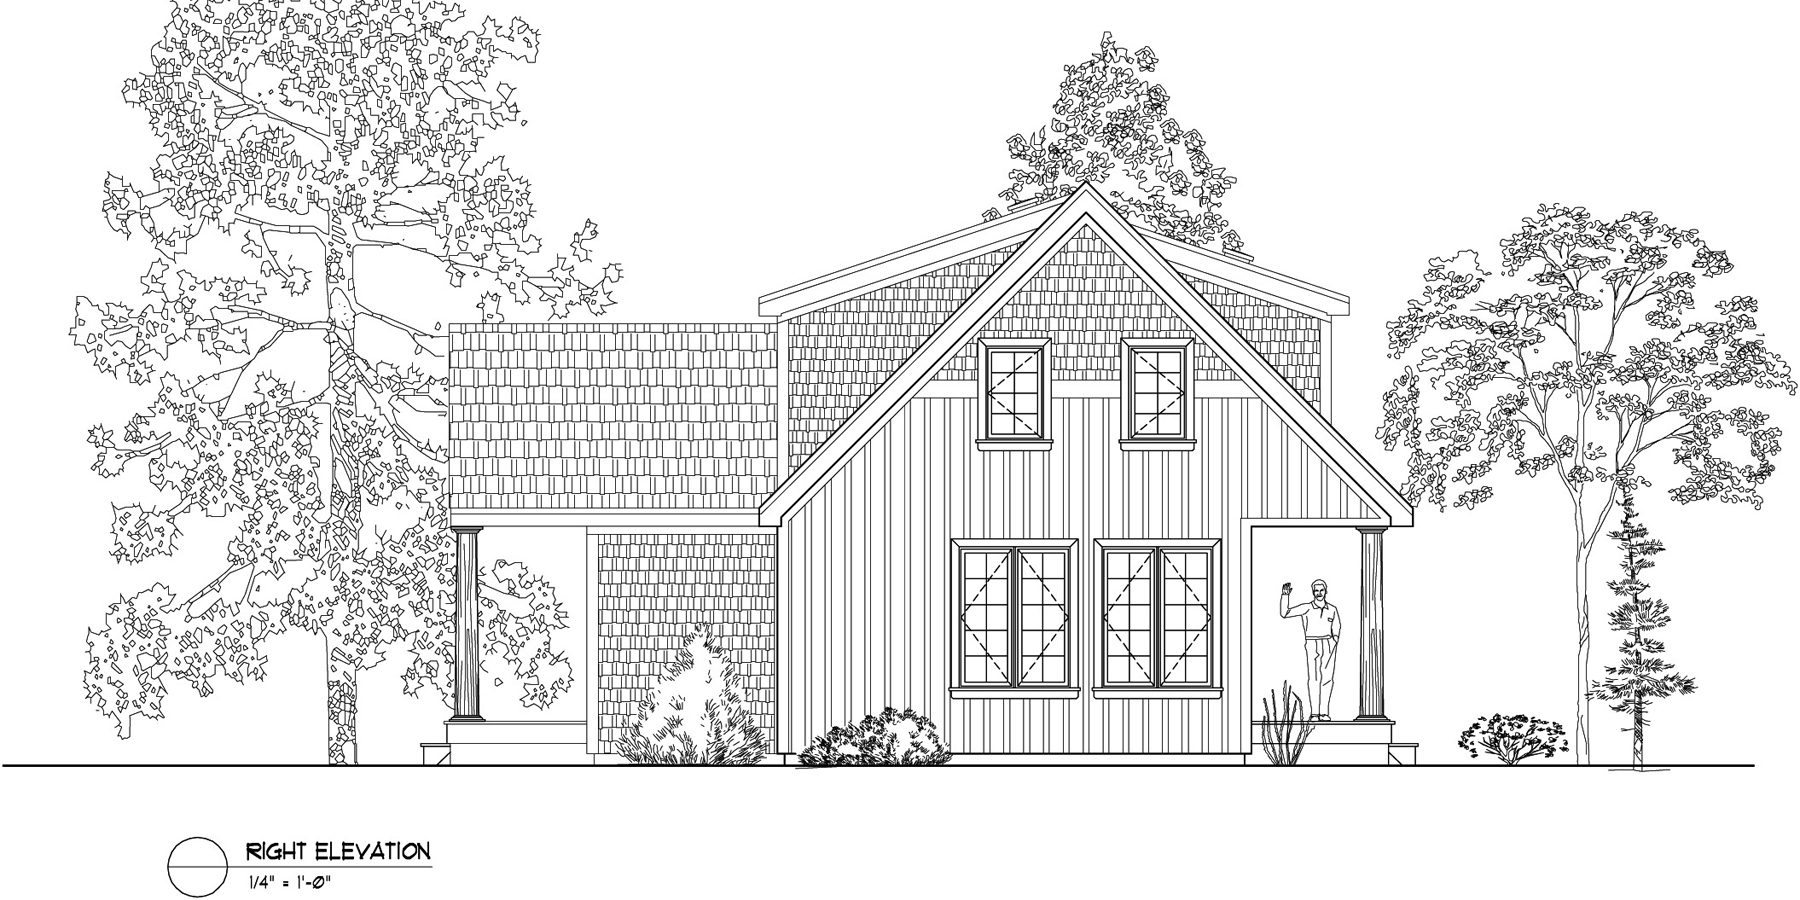 Normerica Timber Frames, House Plan, The Routt 3419, Right Elevation